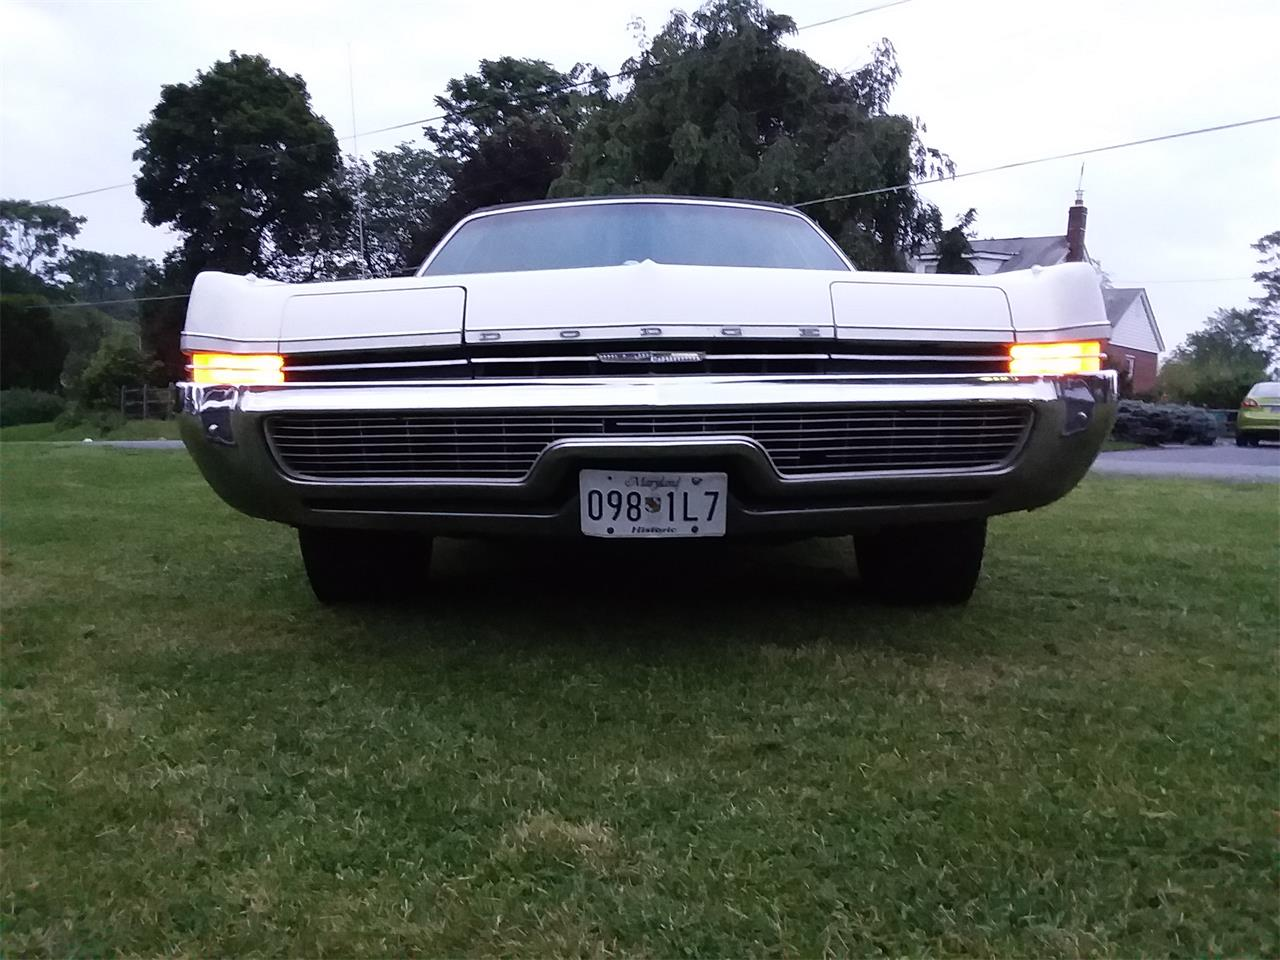 Dodge Dealers In Maryland >> 1972 Dodge Monaco for Sale | ClassicCars.com | CC-963607